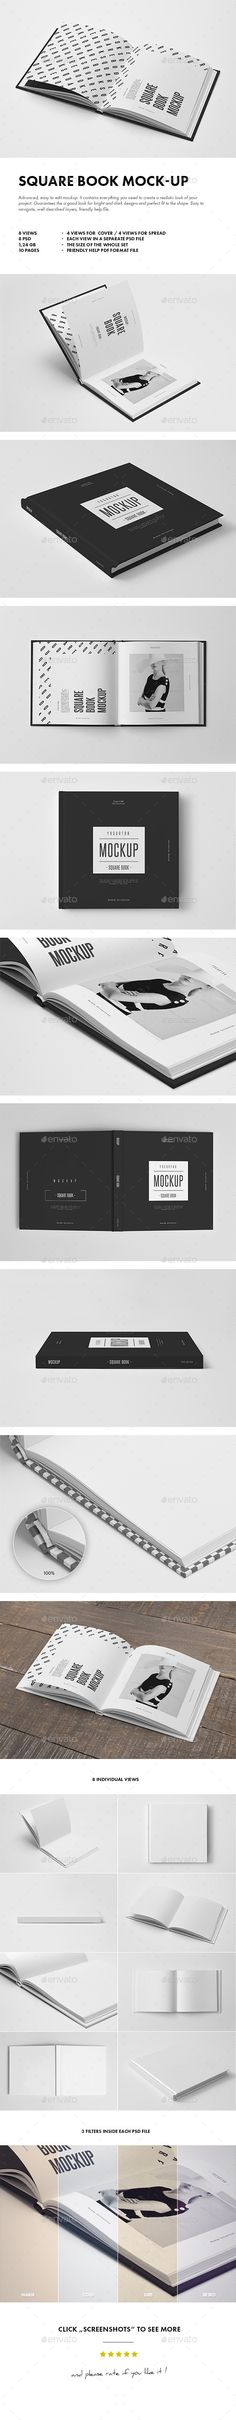 Square Book Mock-up. Advanced, easy to edit mockup. It contains everything you need to create a realistic look of your project.